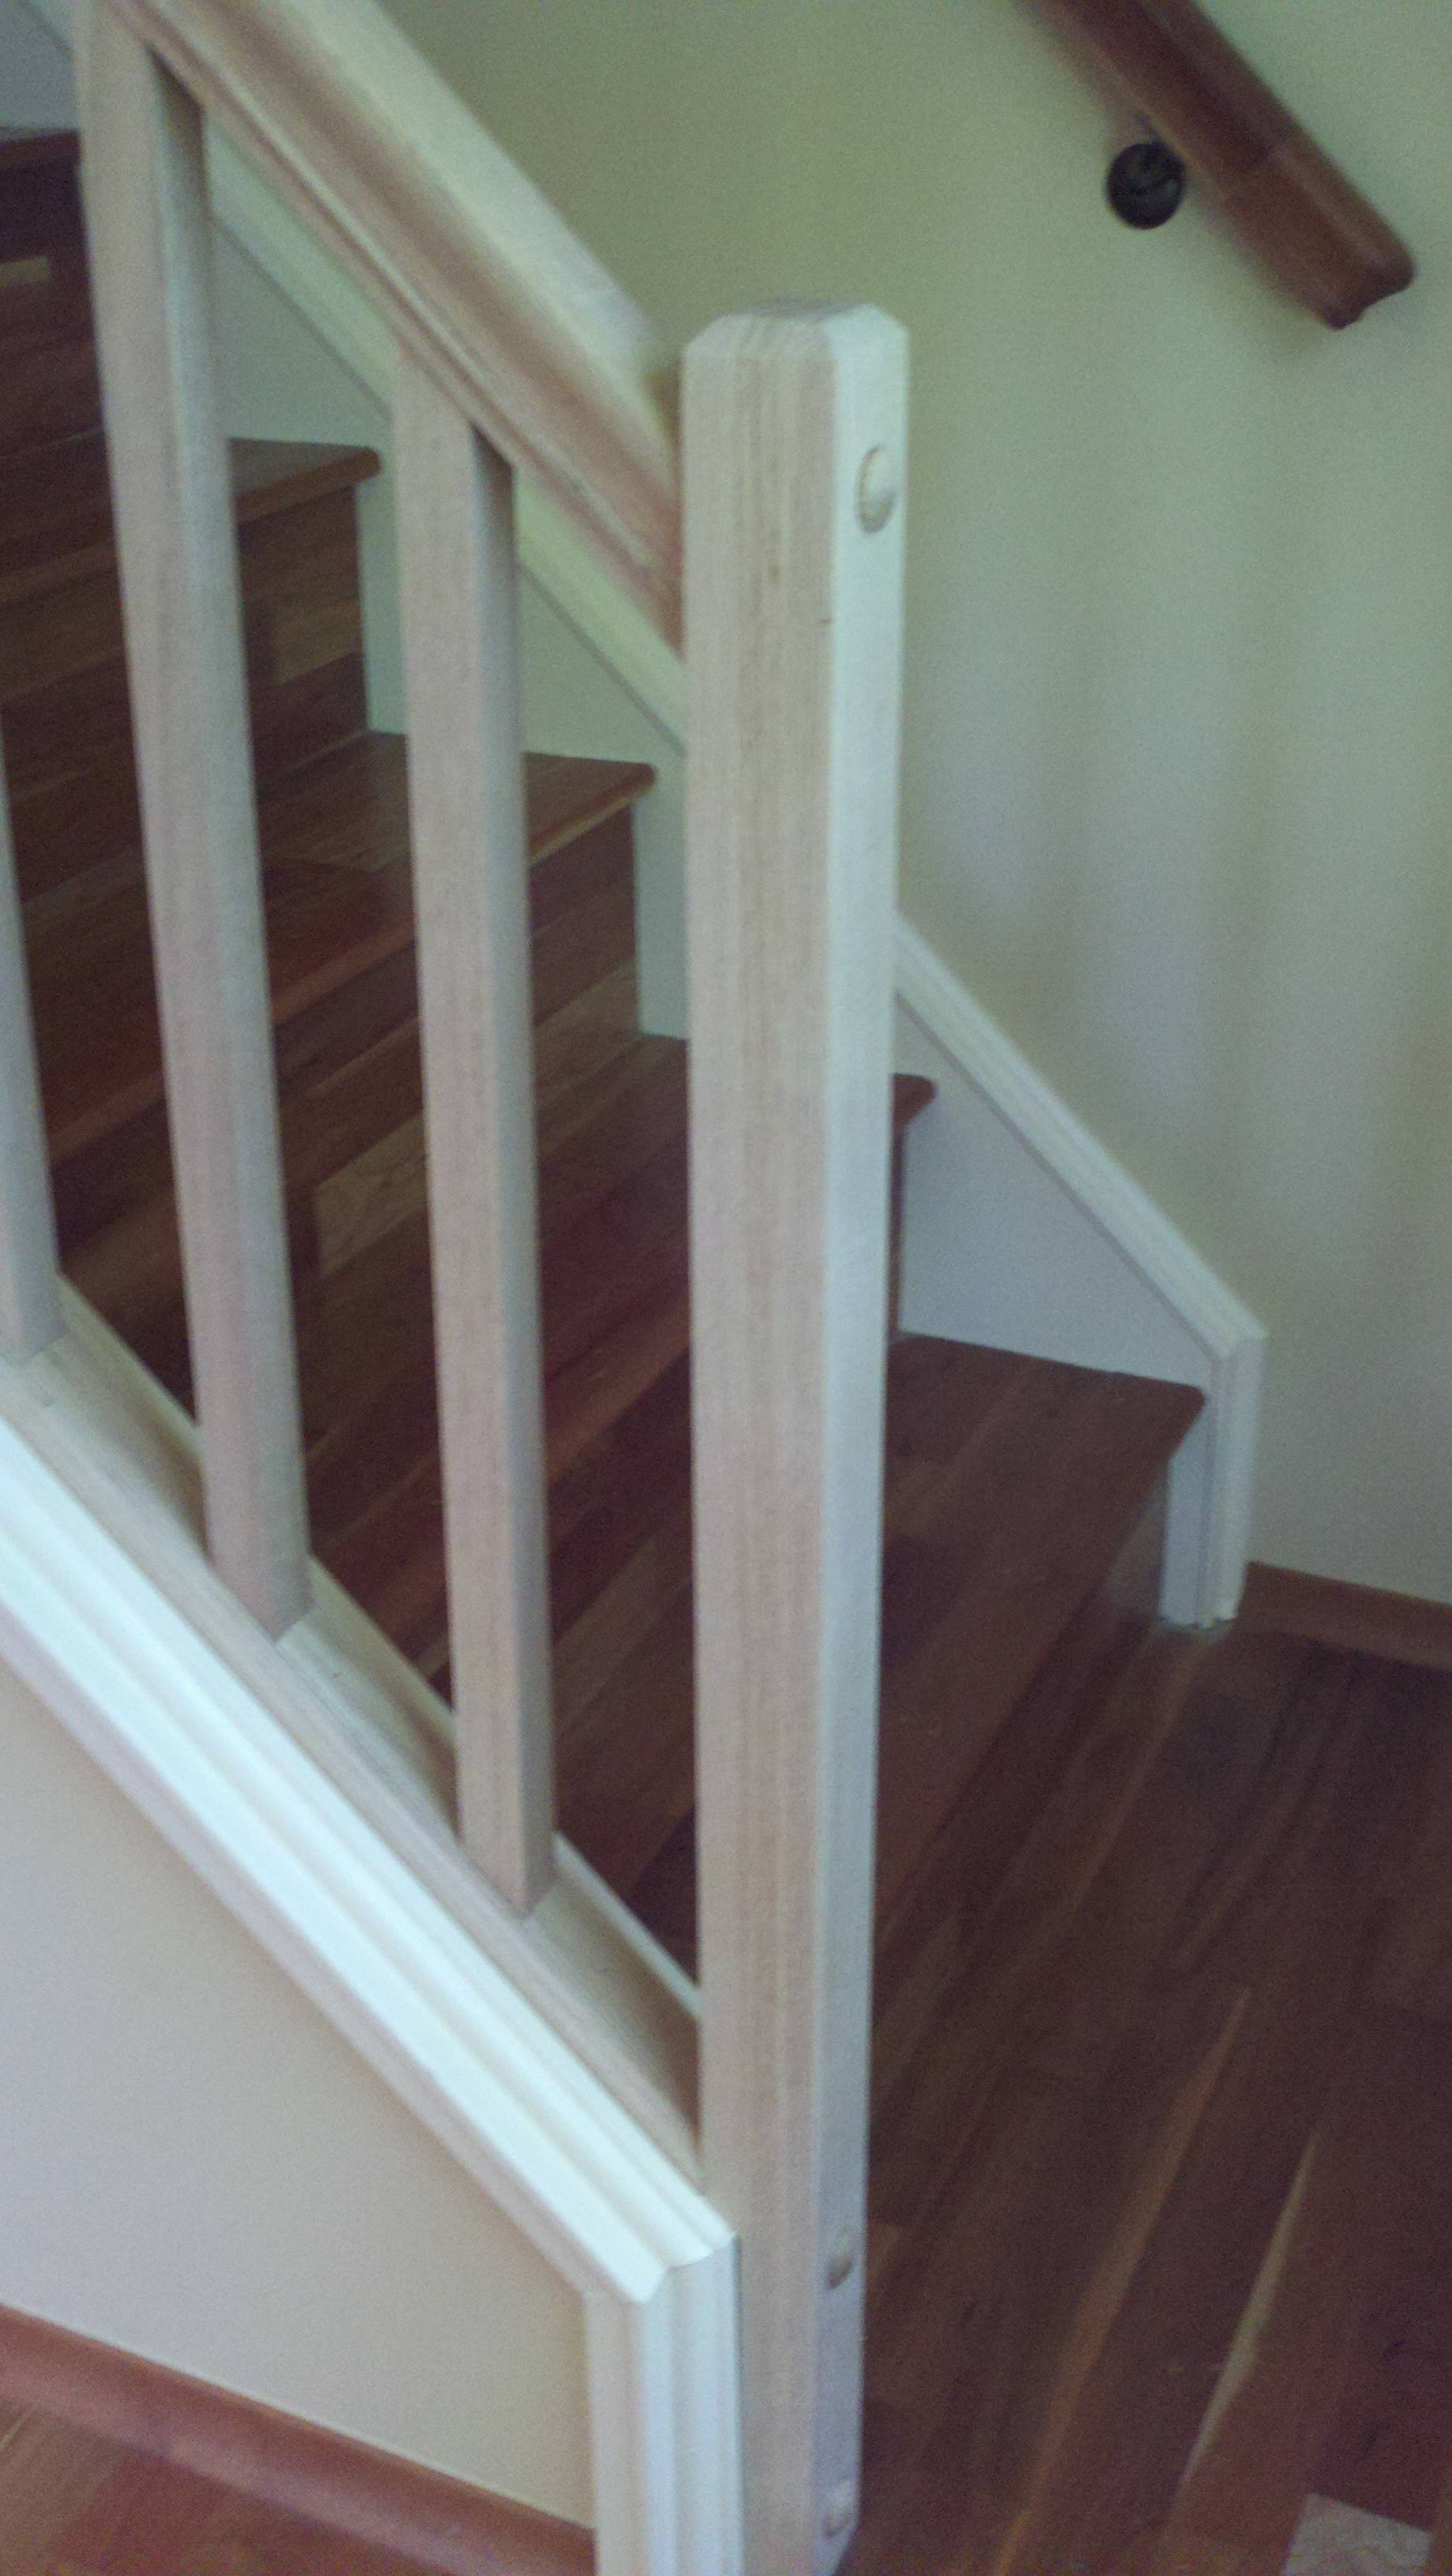 How Can I Set Up A Removable Stair Railing Home Improvement | Installing Newel Post And Spindles | Stair Parts | Staircase | Stair Banister | Iron Stair | Wrought Iron Spindles